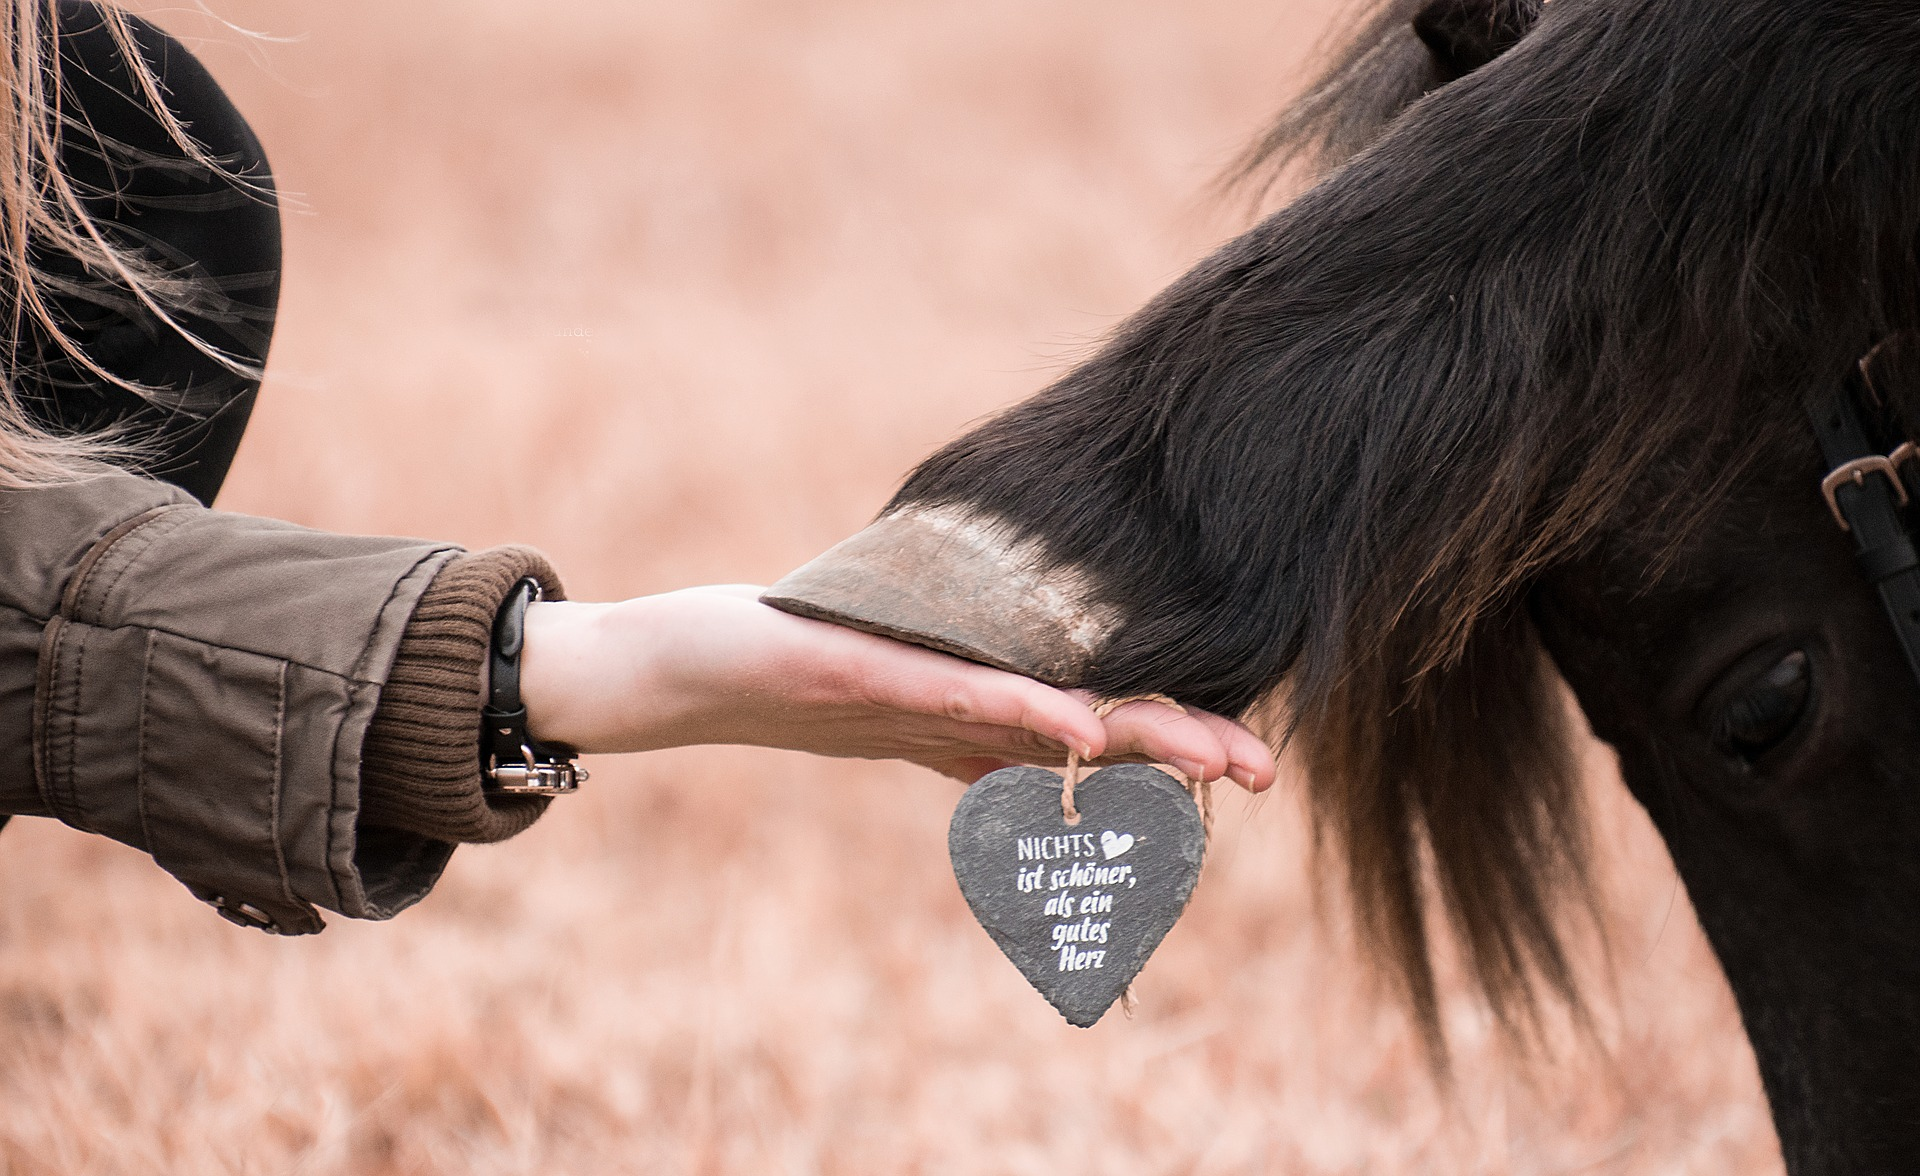 a woman holding a horse's hoof